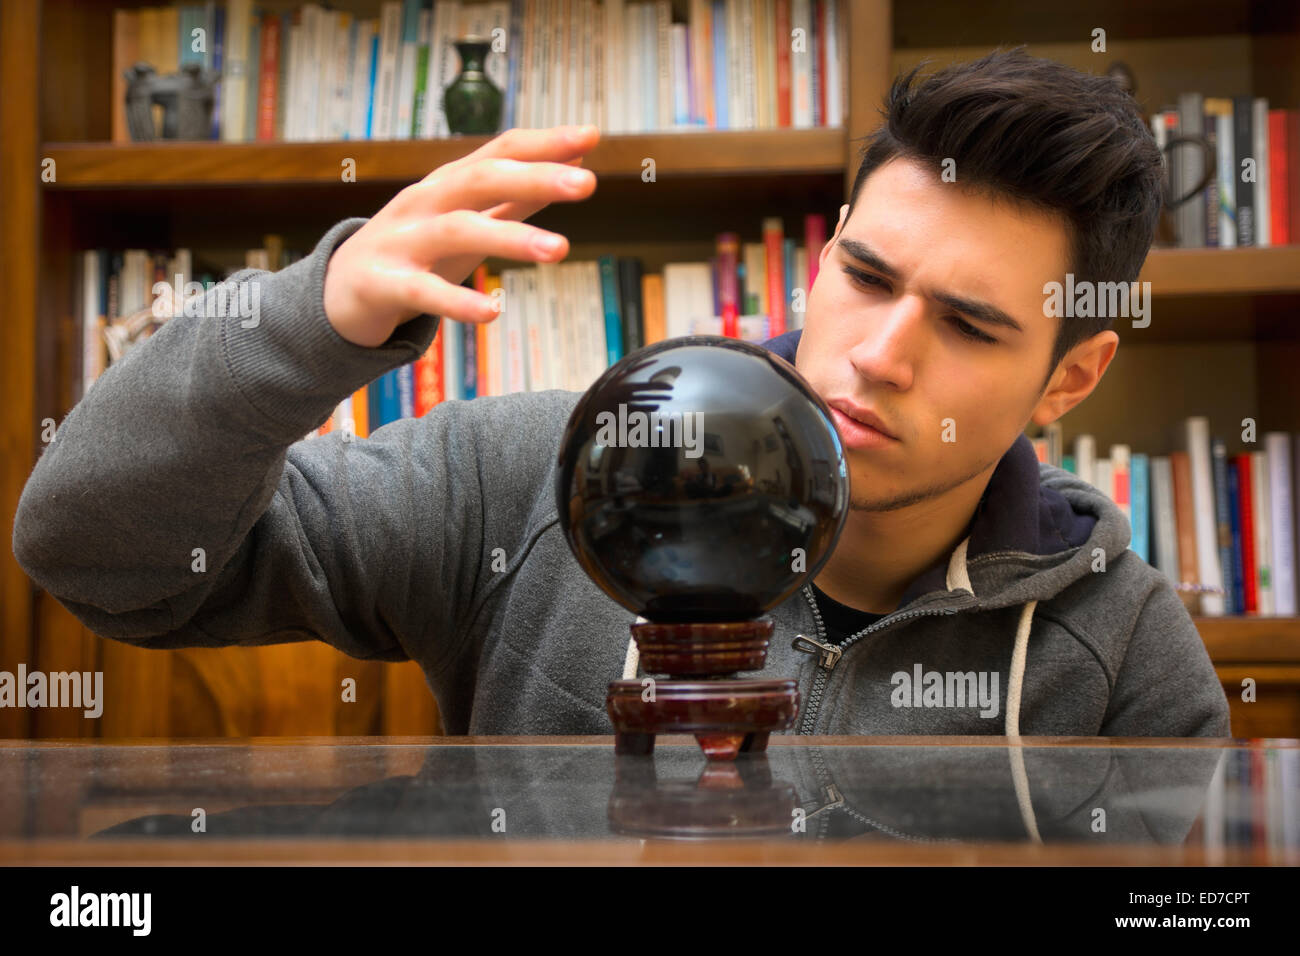 Young man predicting the future by looking into crystal ball - Stock Image